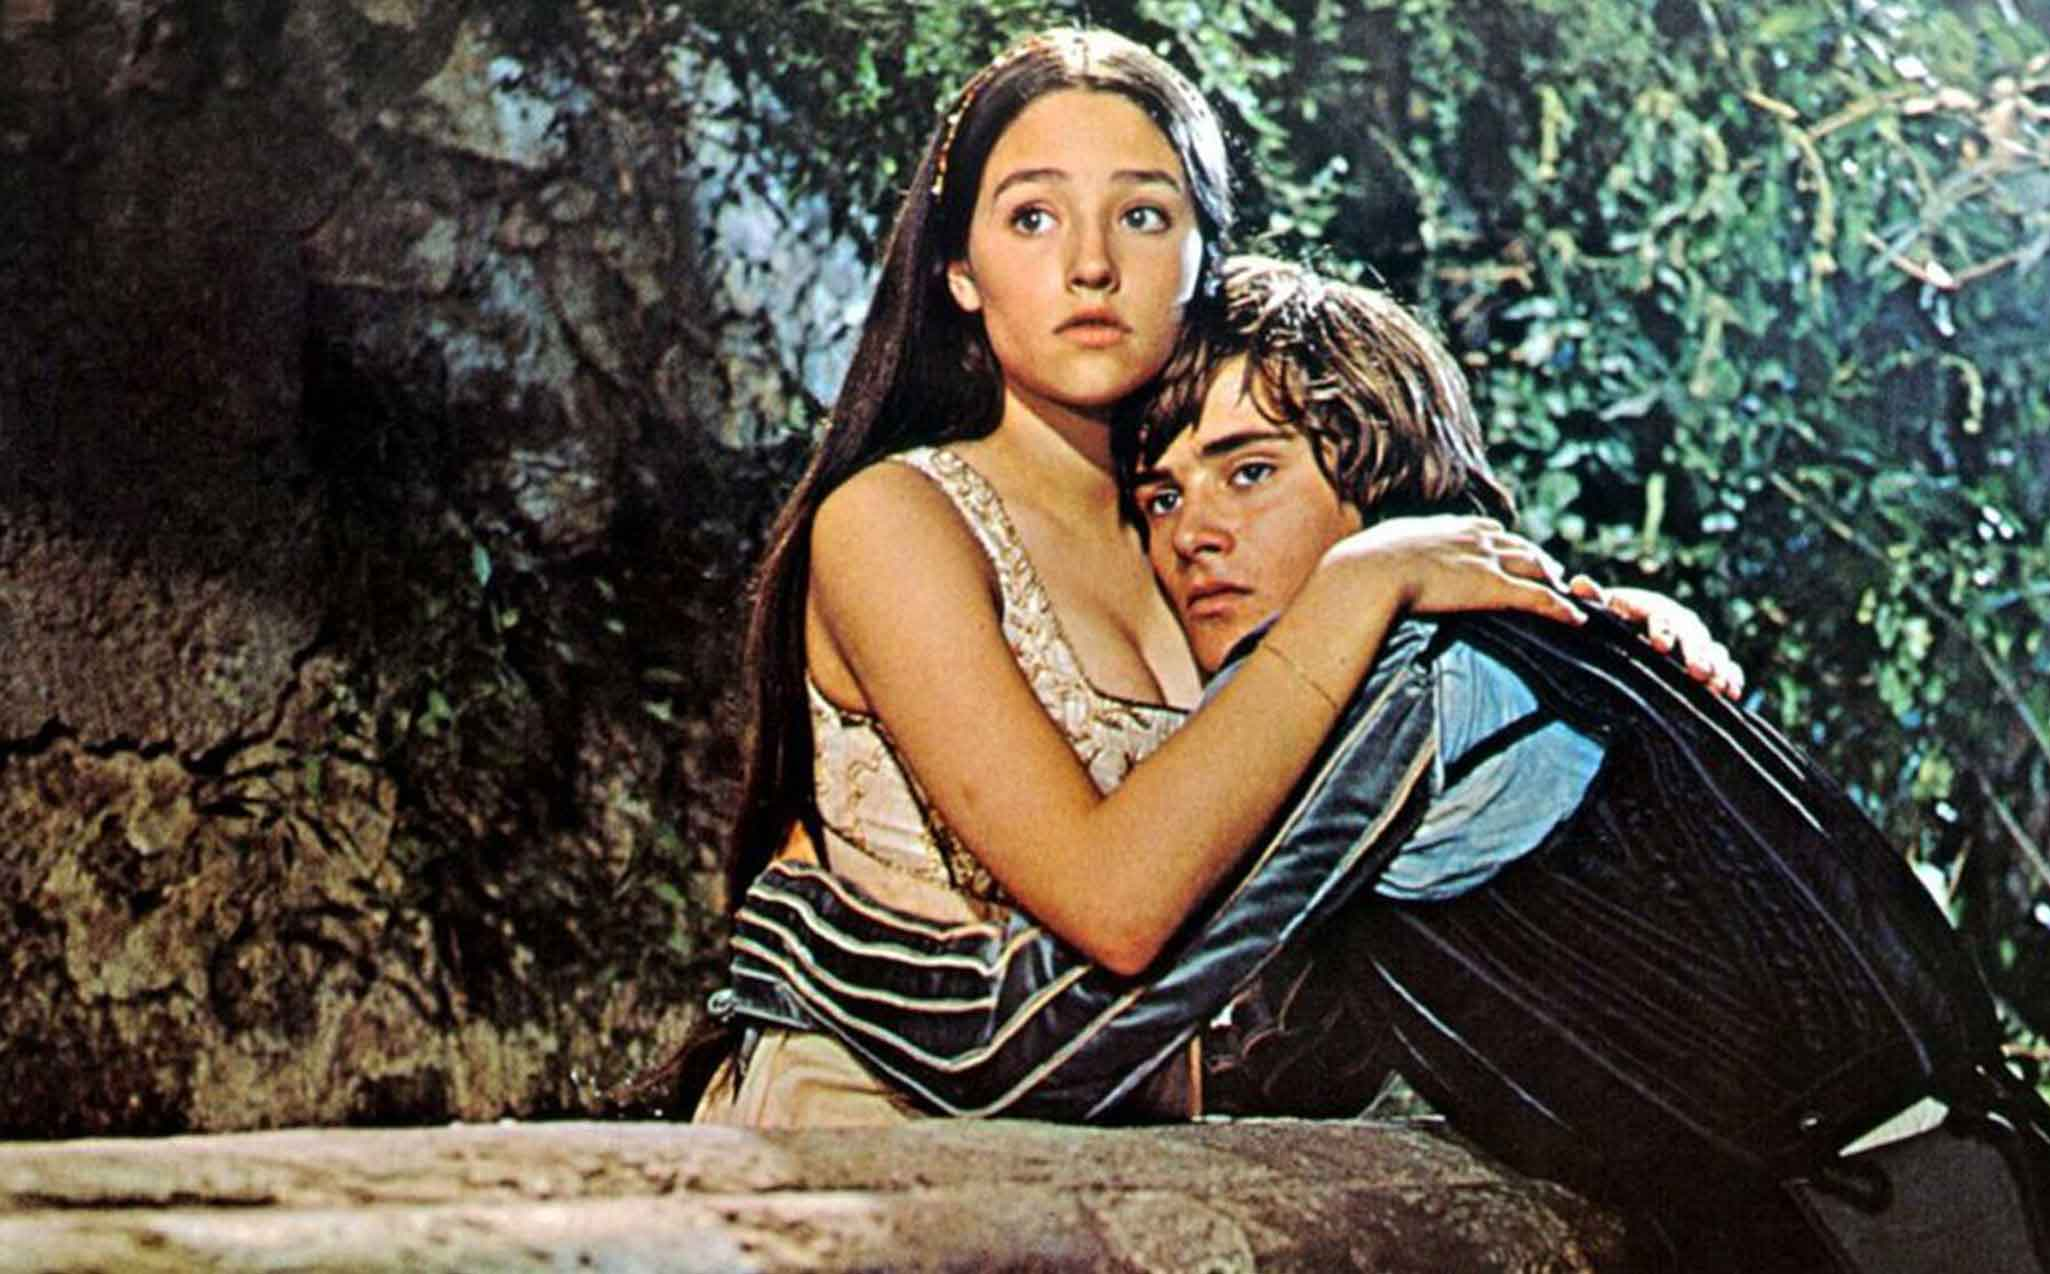 romeo and juliet analysis film and Analysis of romeo and juliet romeo and juliet , a tragedy play, which was set into film, had different versions in movies as i watched one of versions in movie.